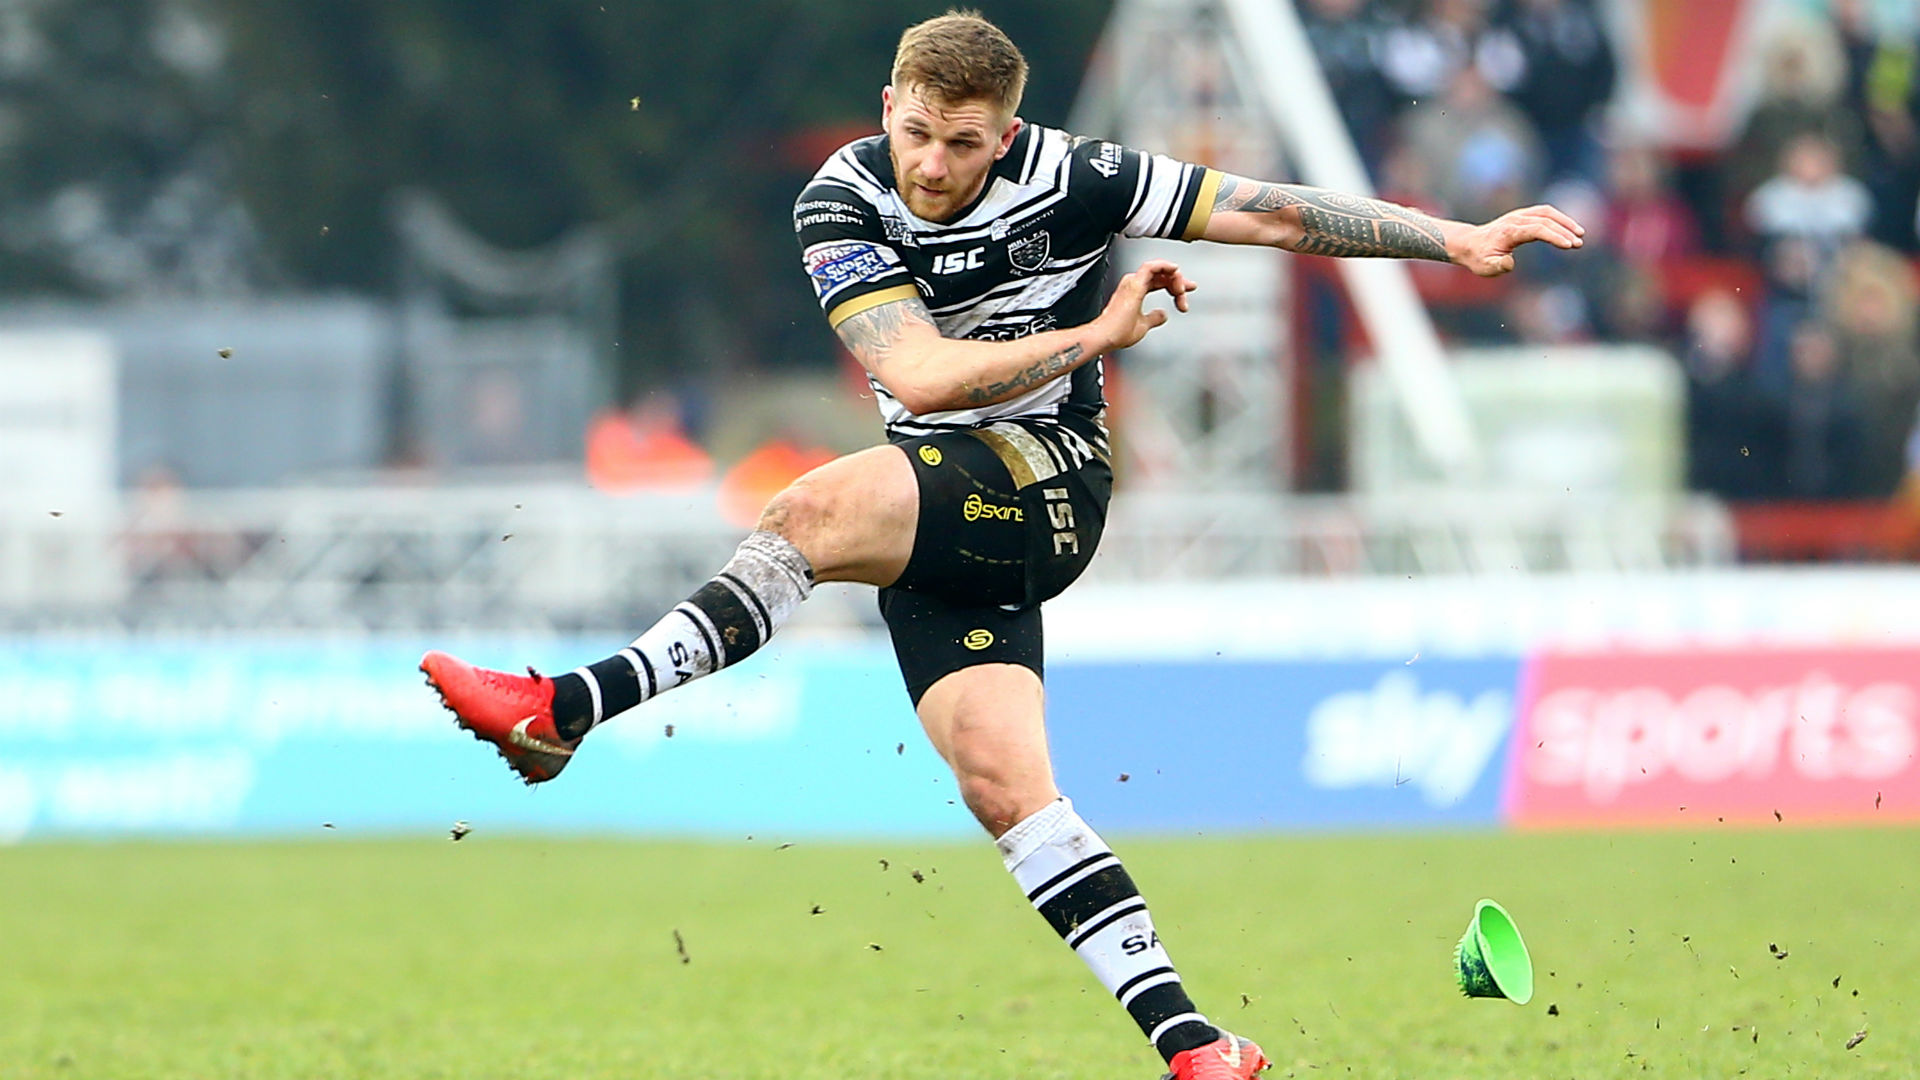 Sneyd the hero in Hull's golden-point win